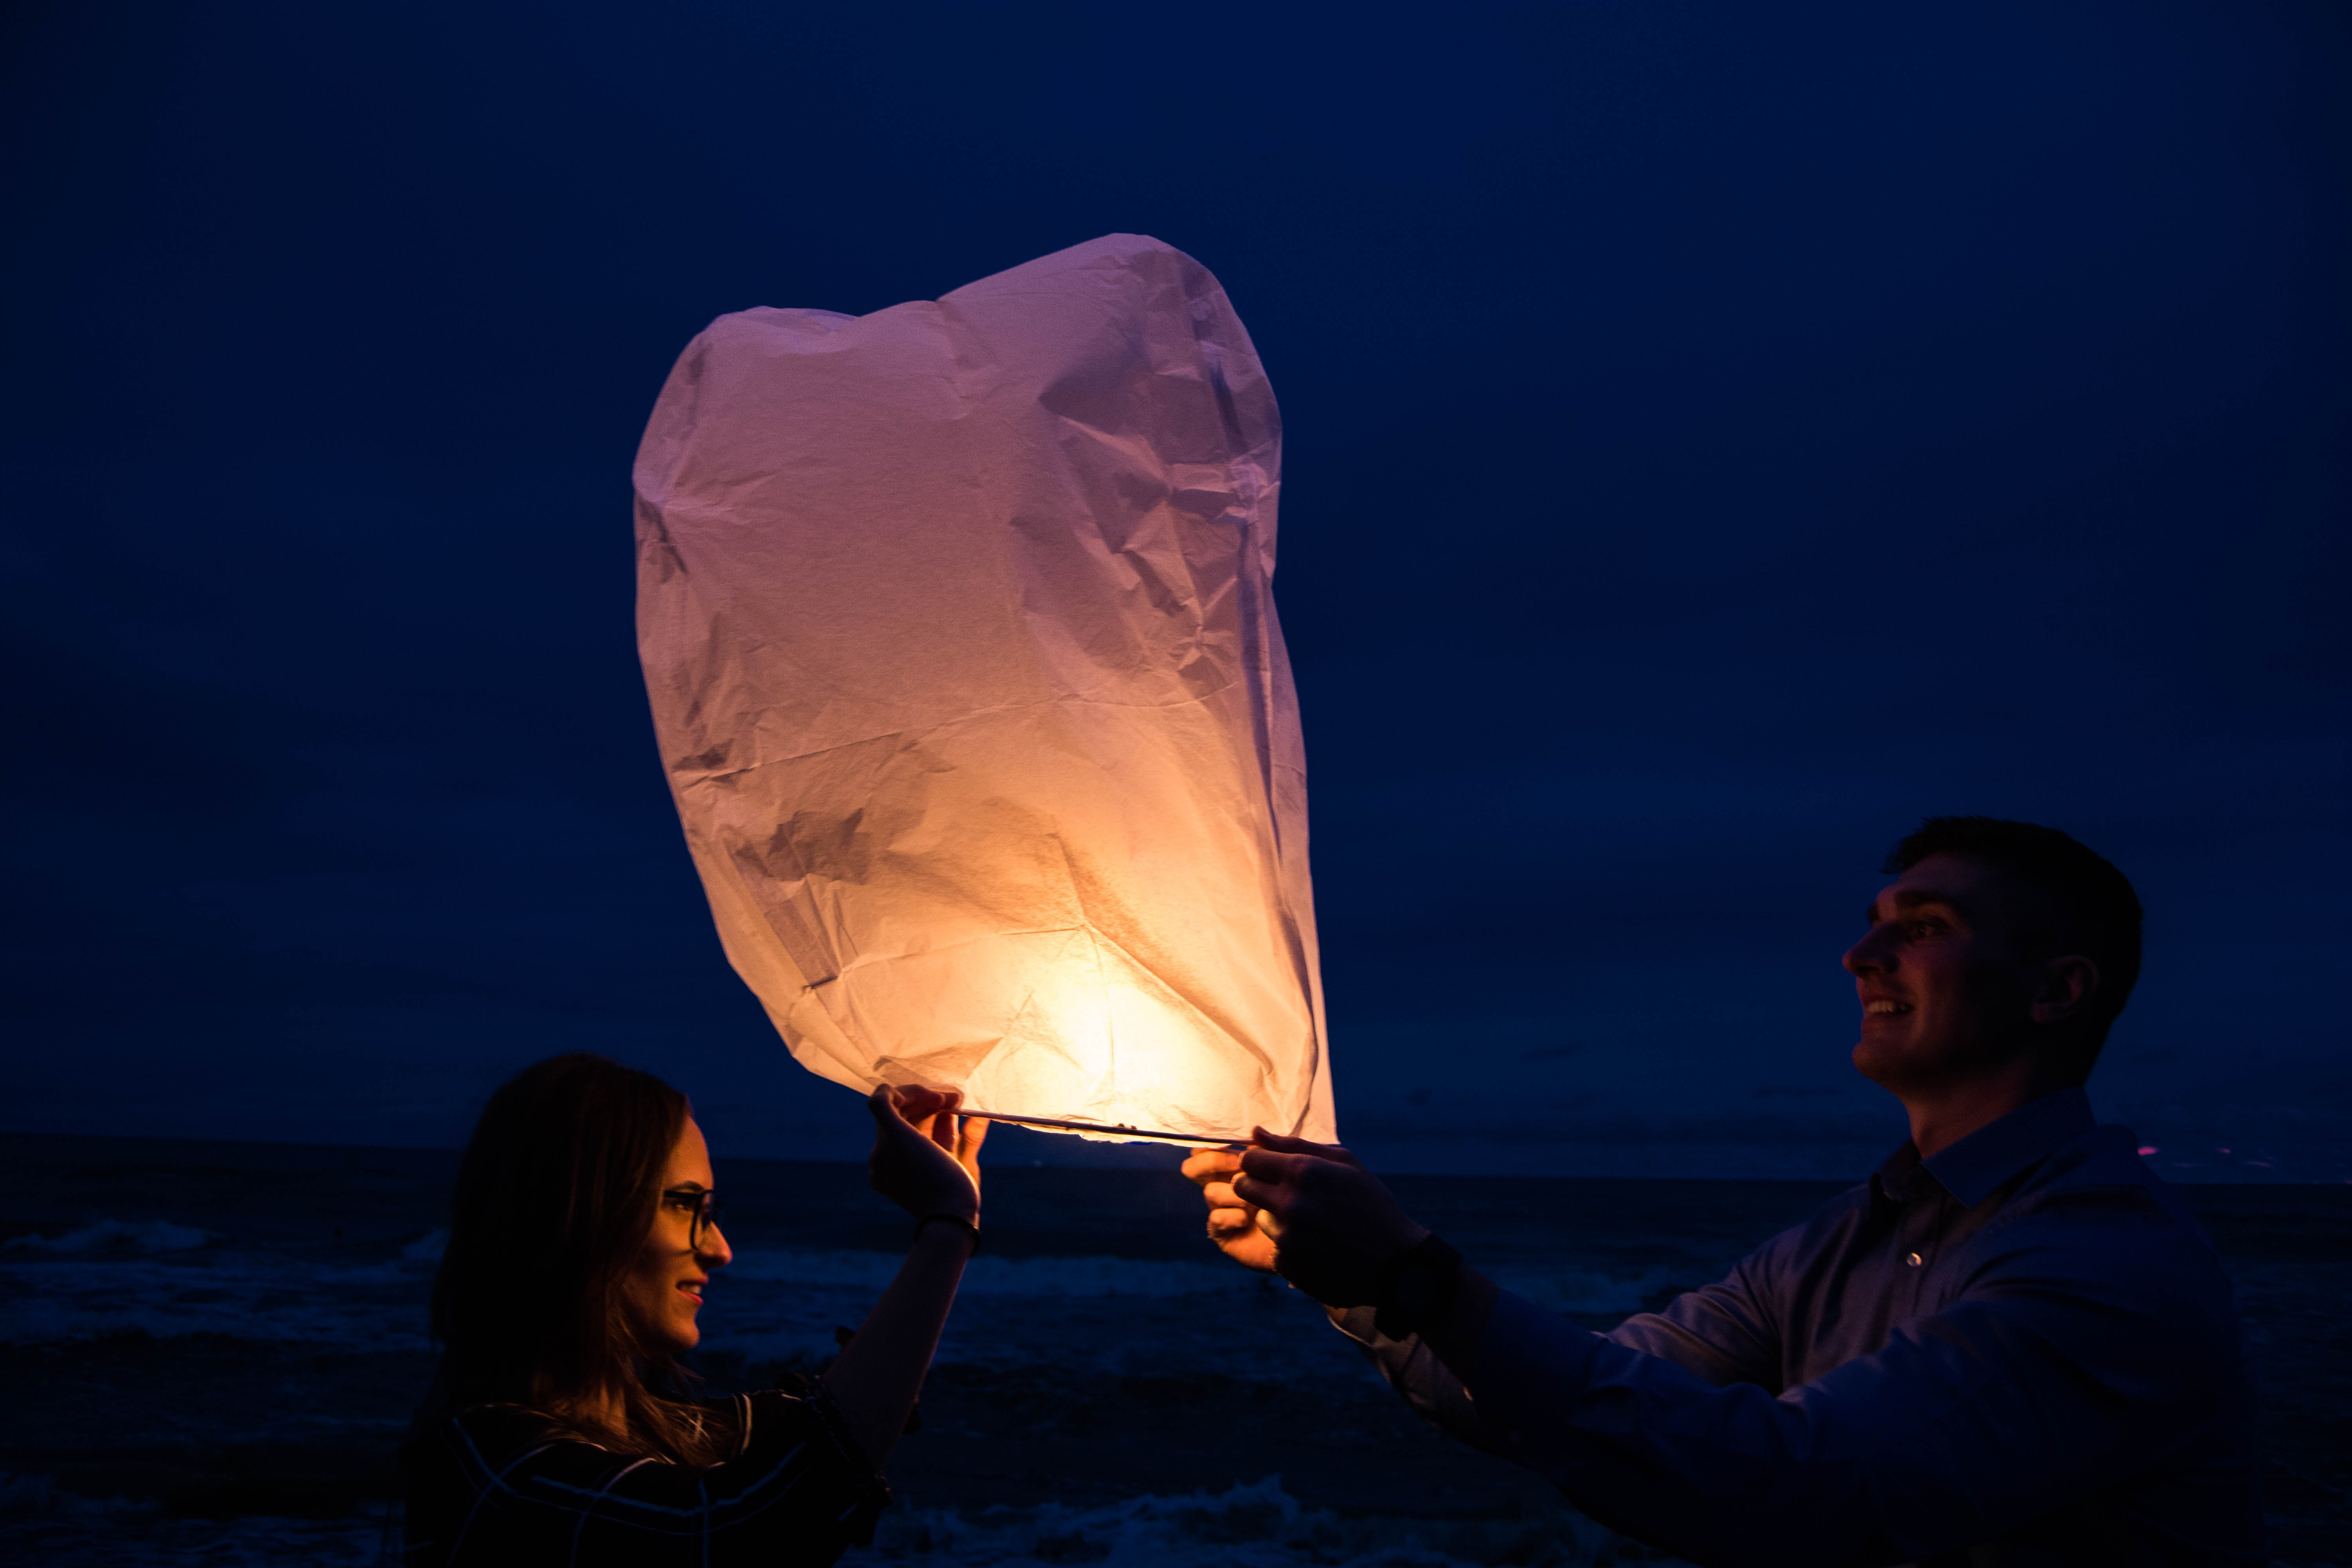 man and woman holding white sky lantern